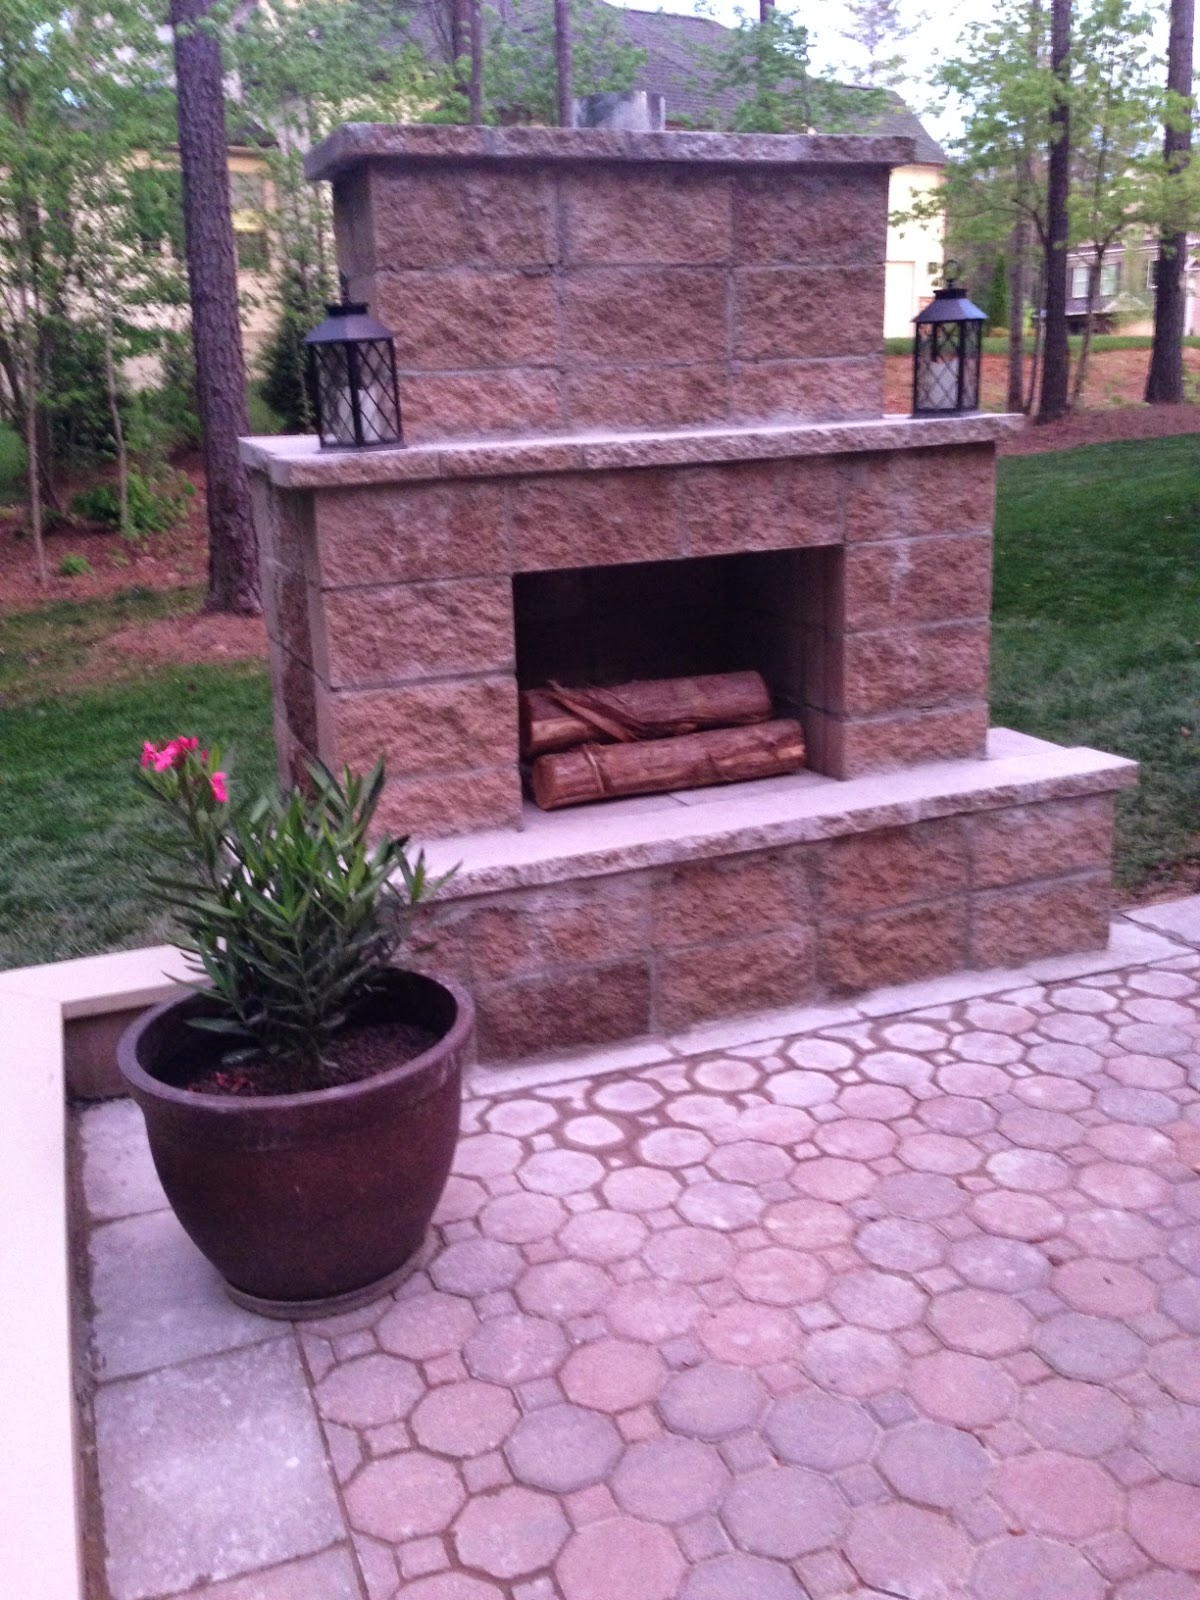 Life in the barbie dream house diy paver patio and for How to build a small outdoor fireplace